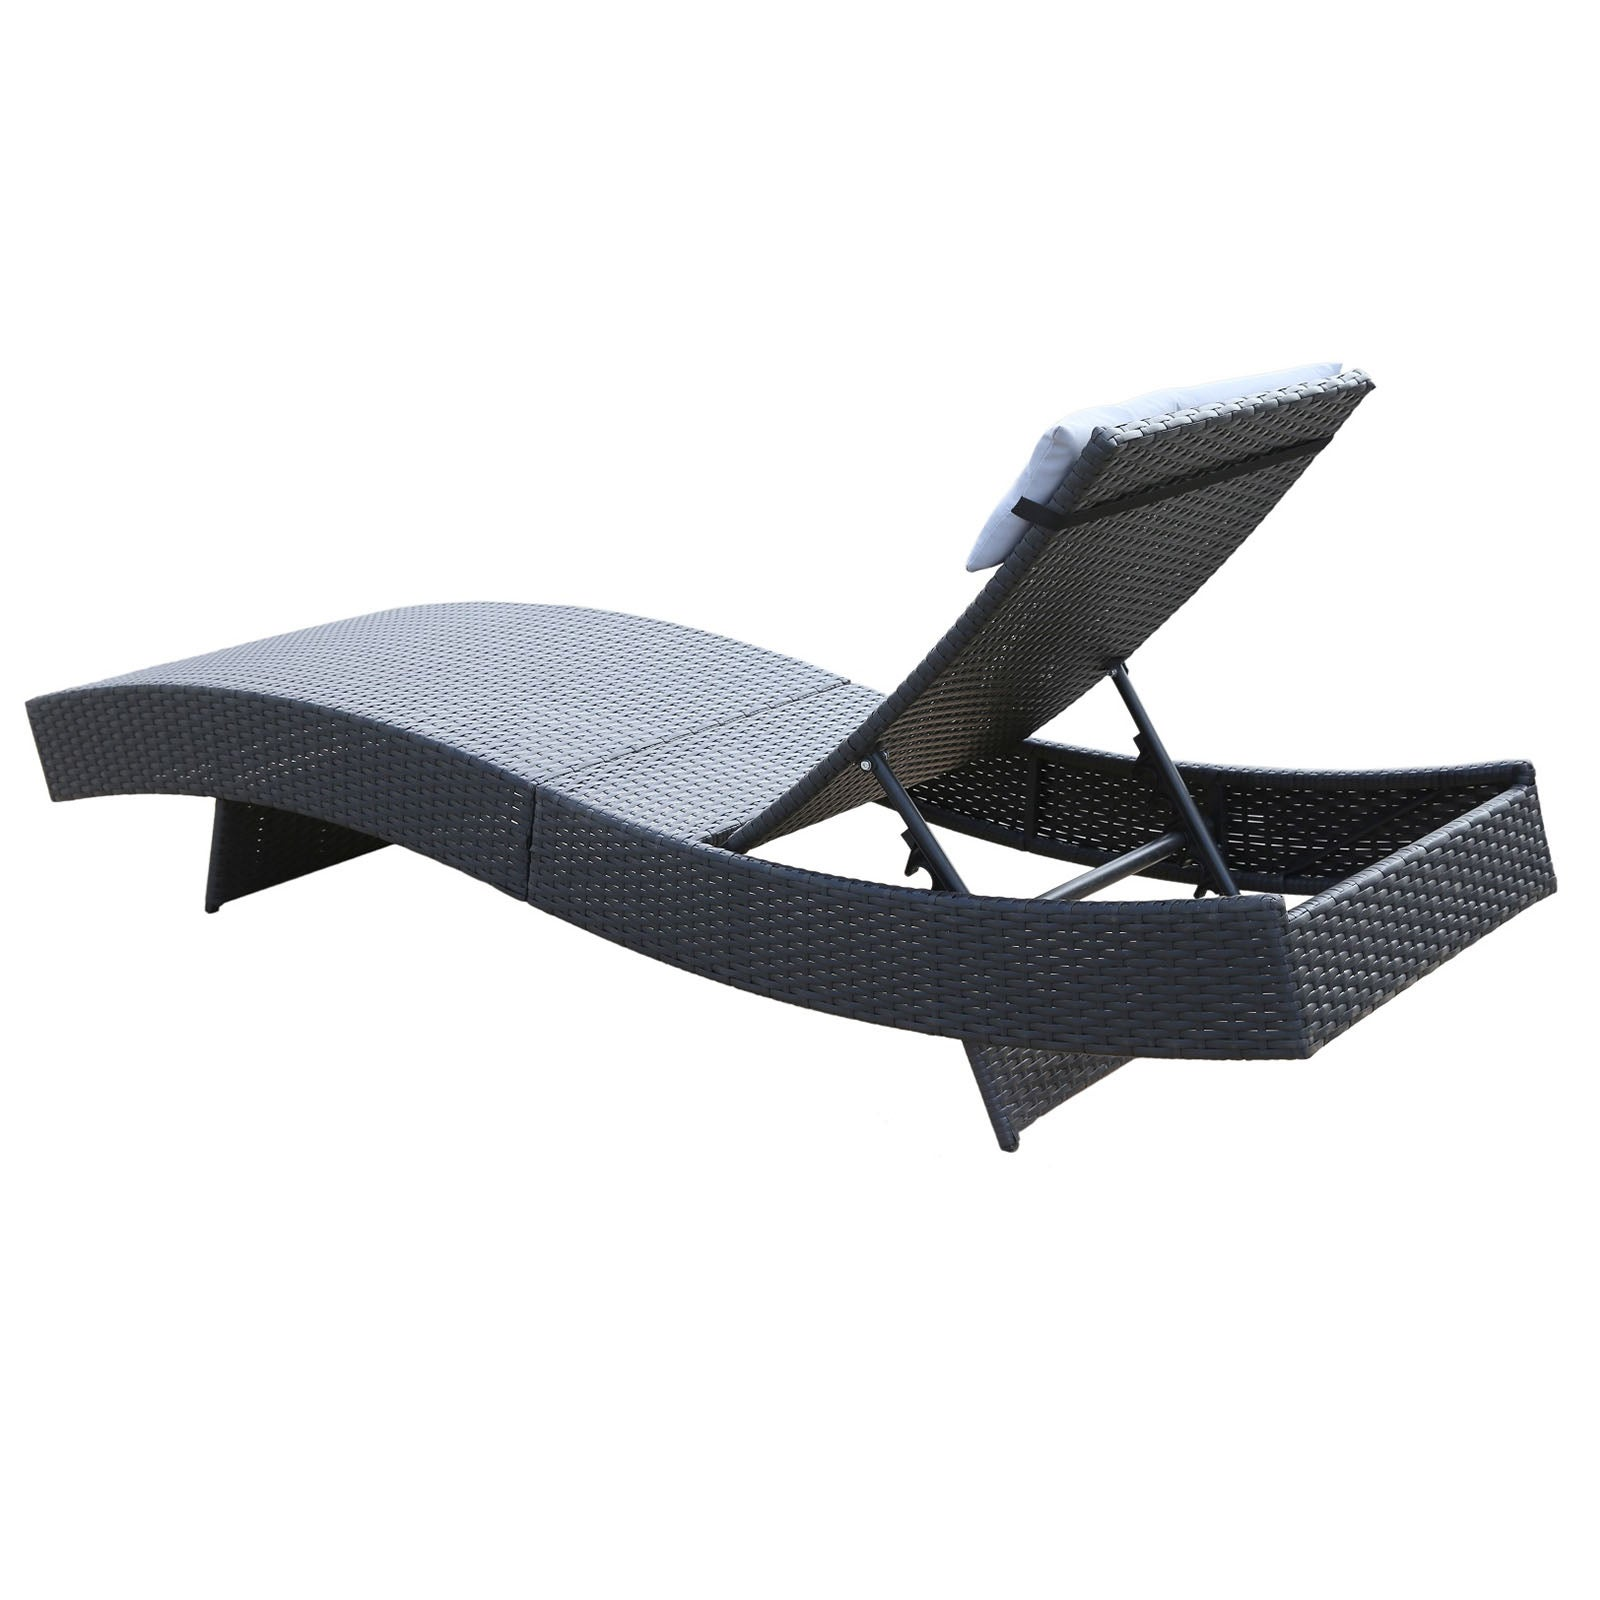 Milano Outdoor Sun Lounge Pool Bed Deck Rattan Chair